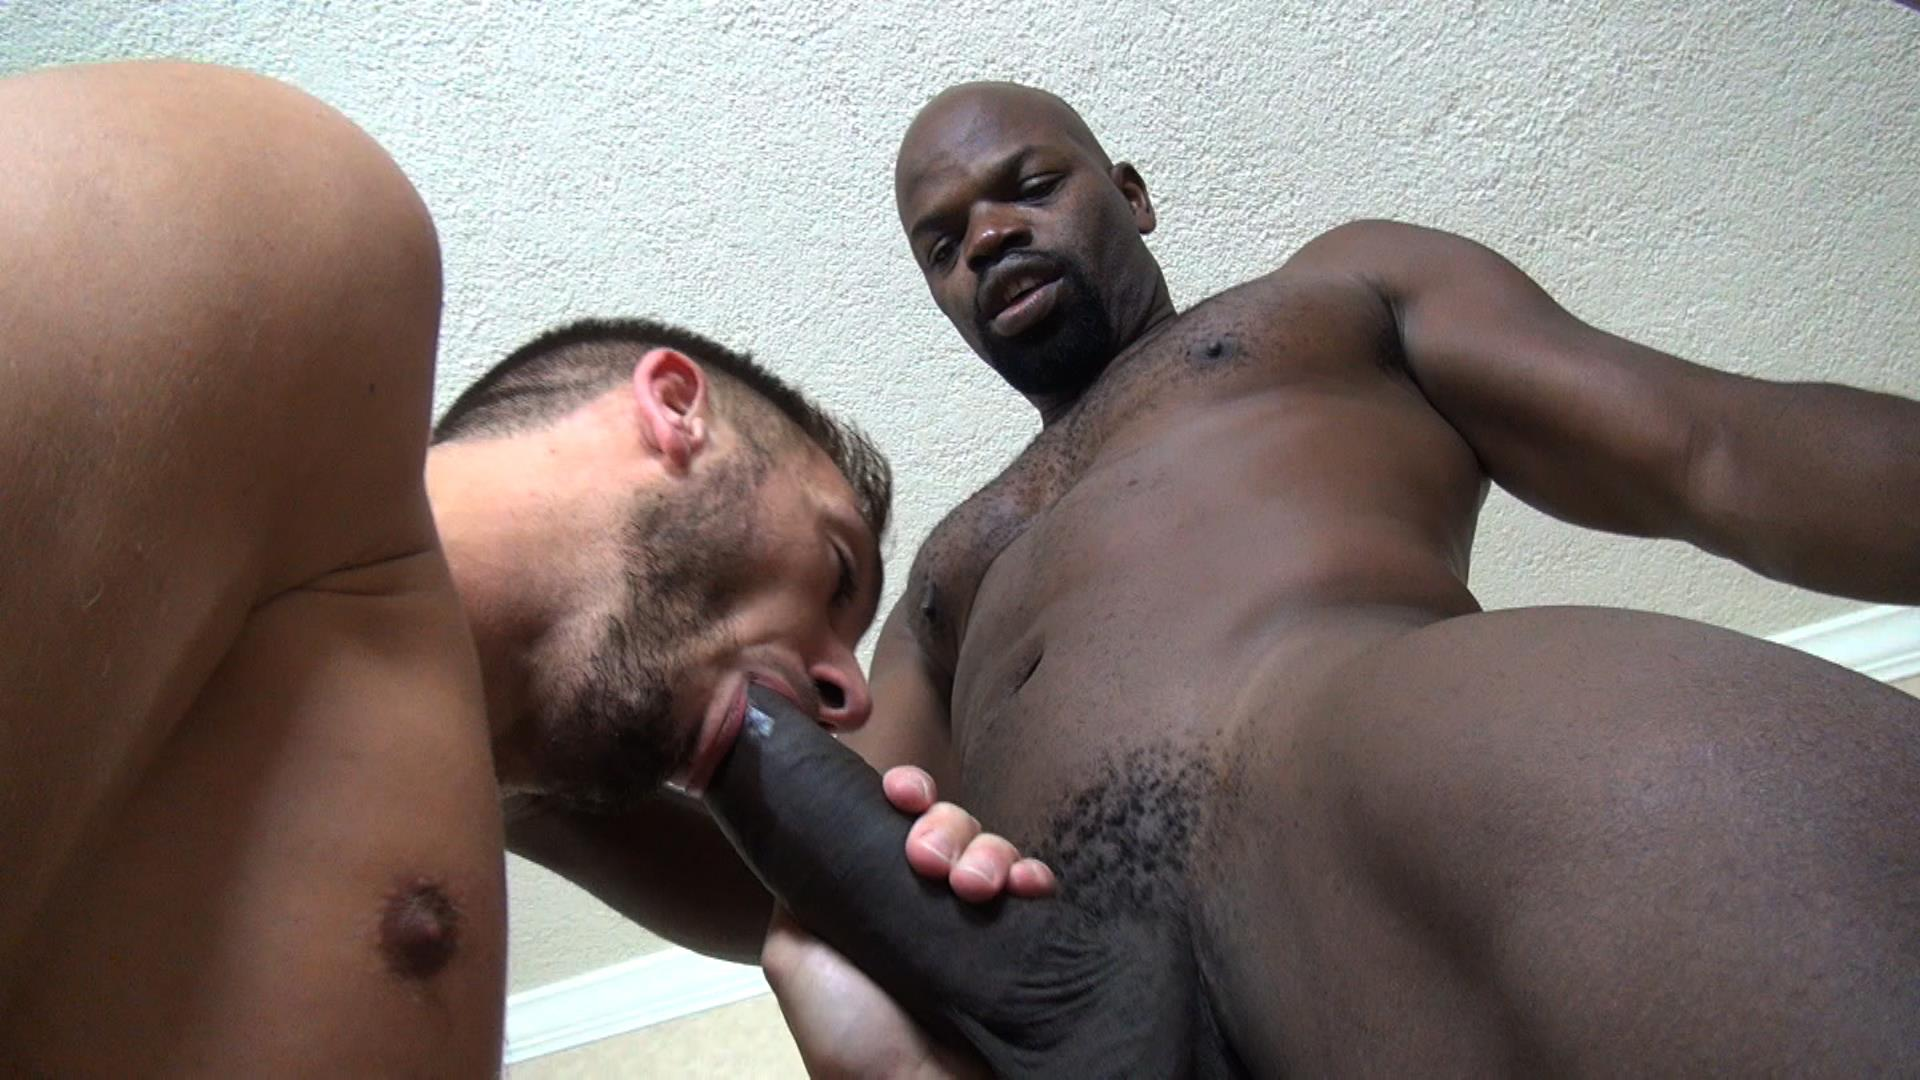 Best of Interracial Gay Pornhub